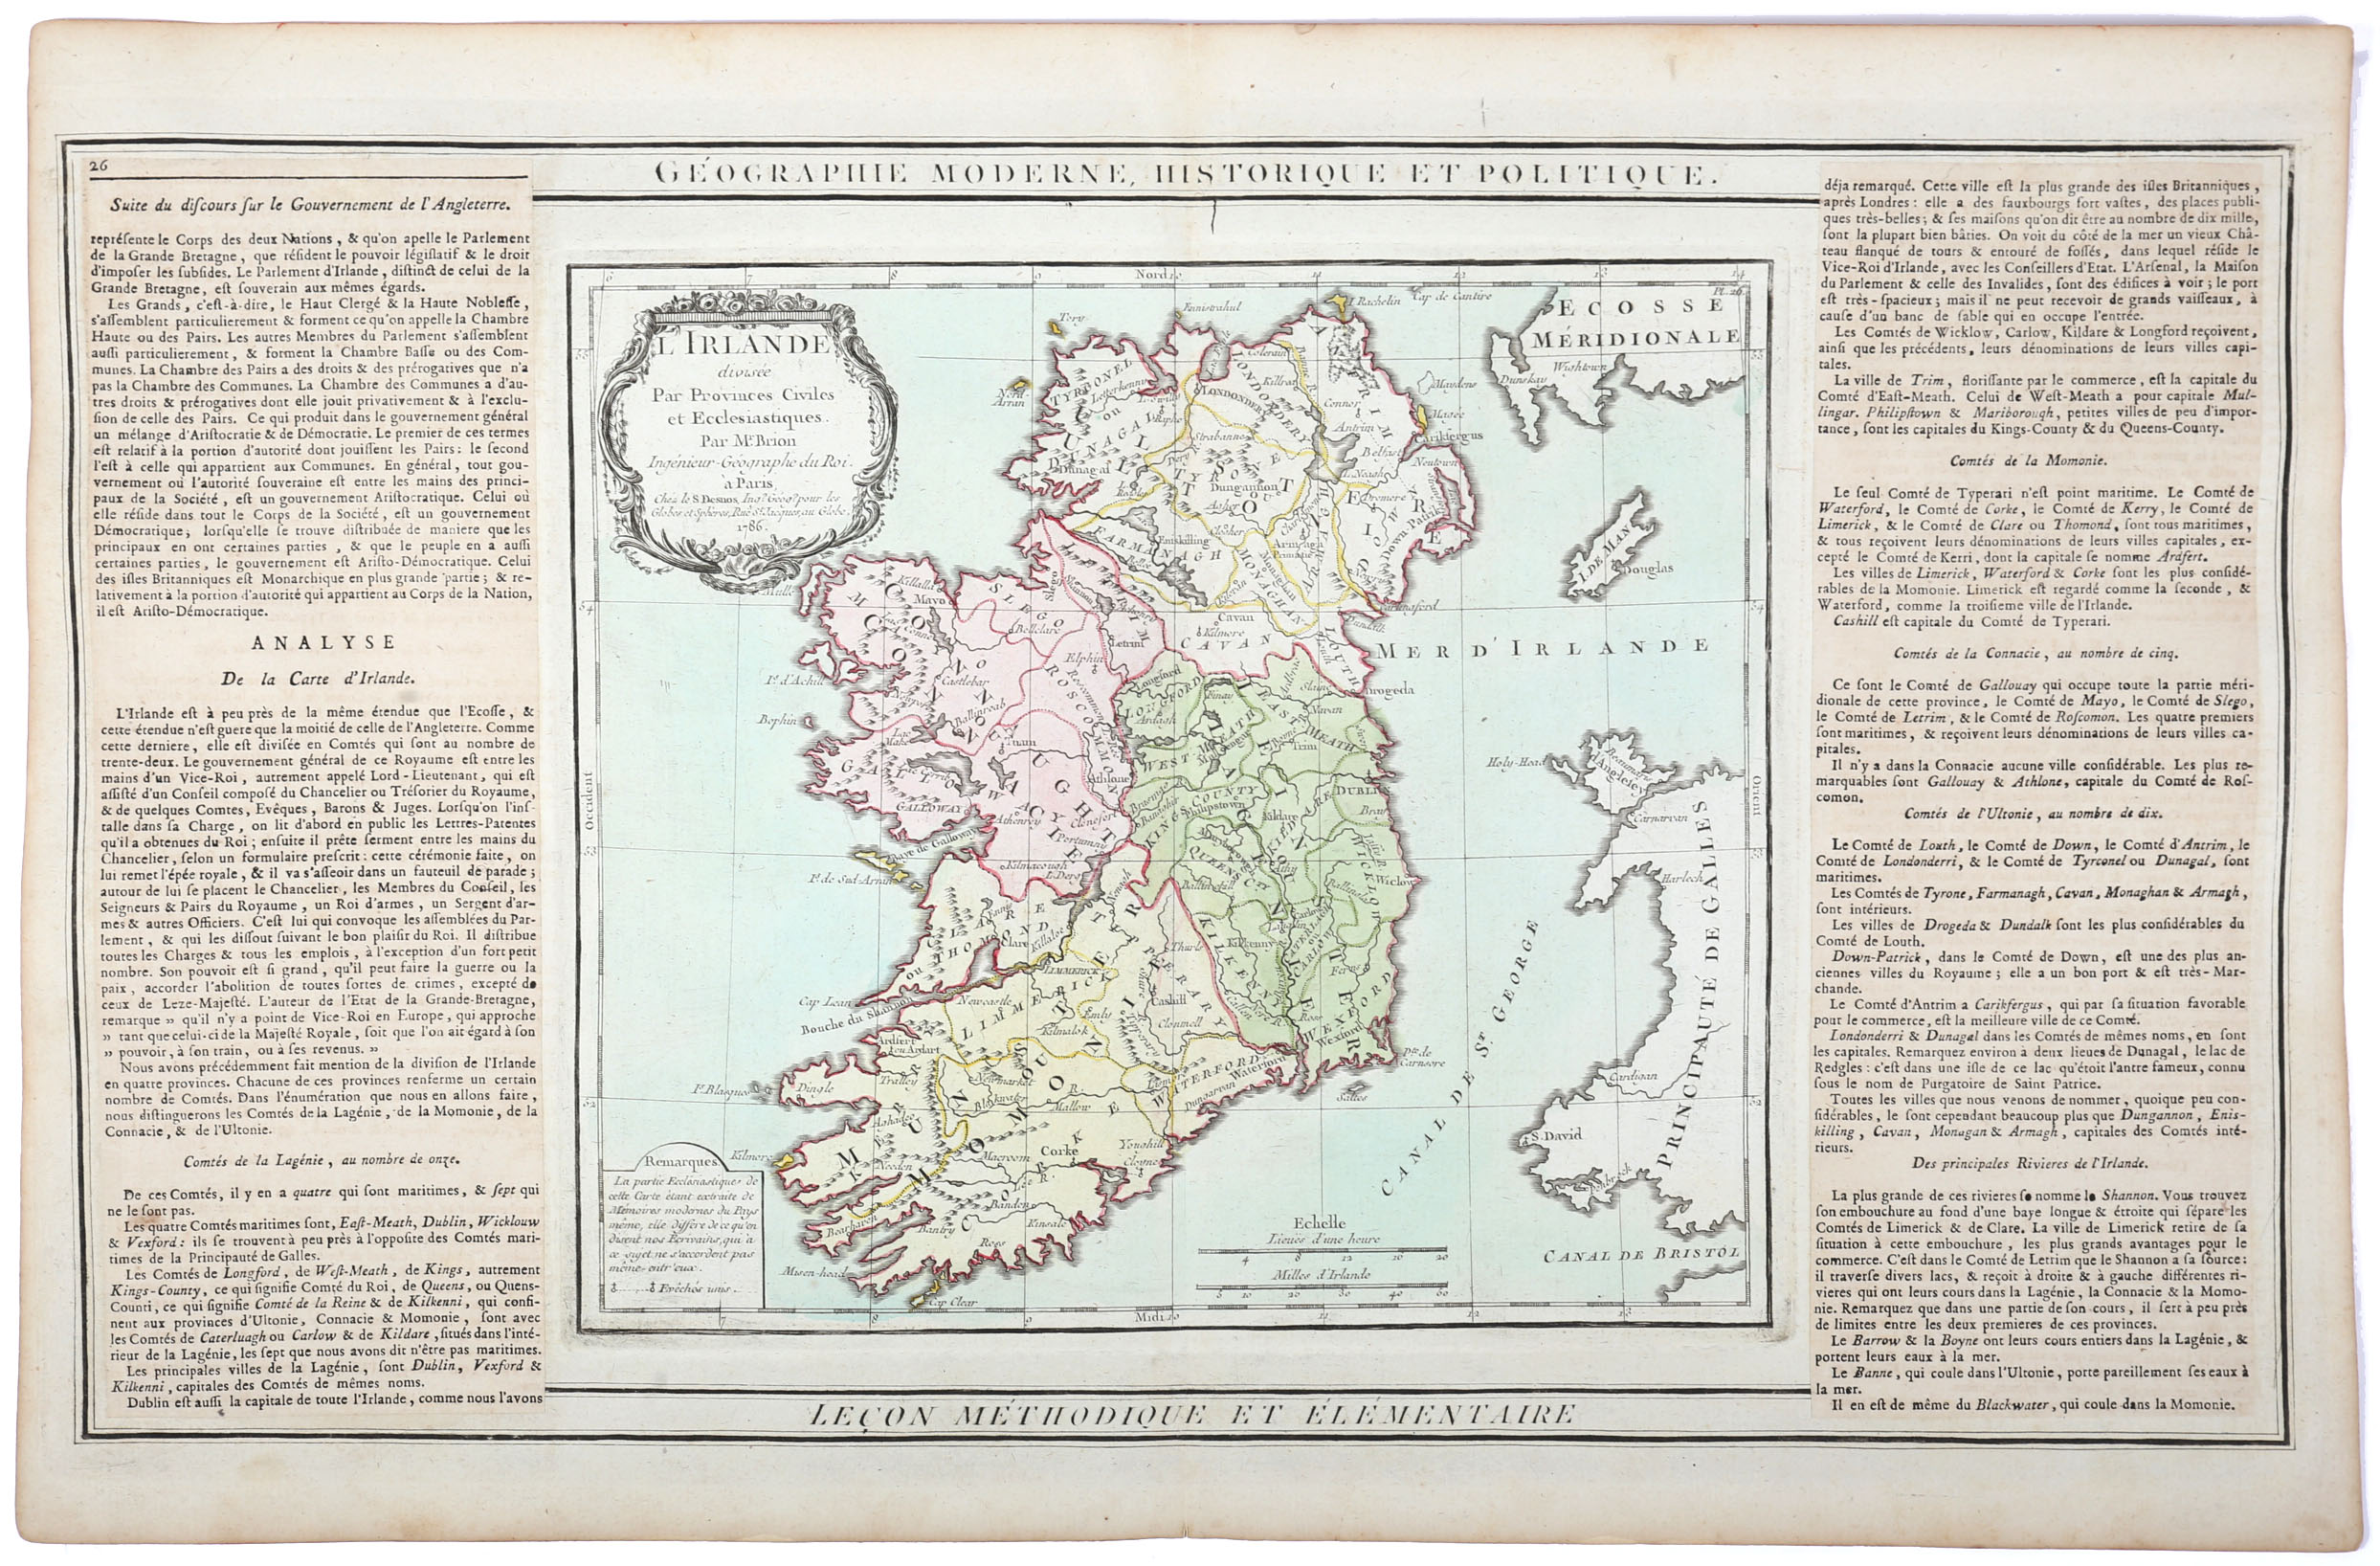 Maps of Ireland. 1744 Map of Ireland by Richard William Seale, Map of the Kingdom of Ireland From - Image 2 of 3